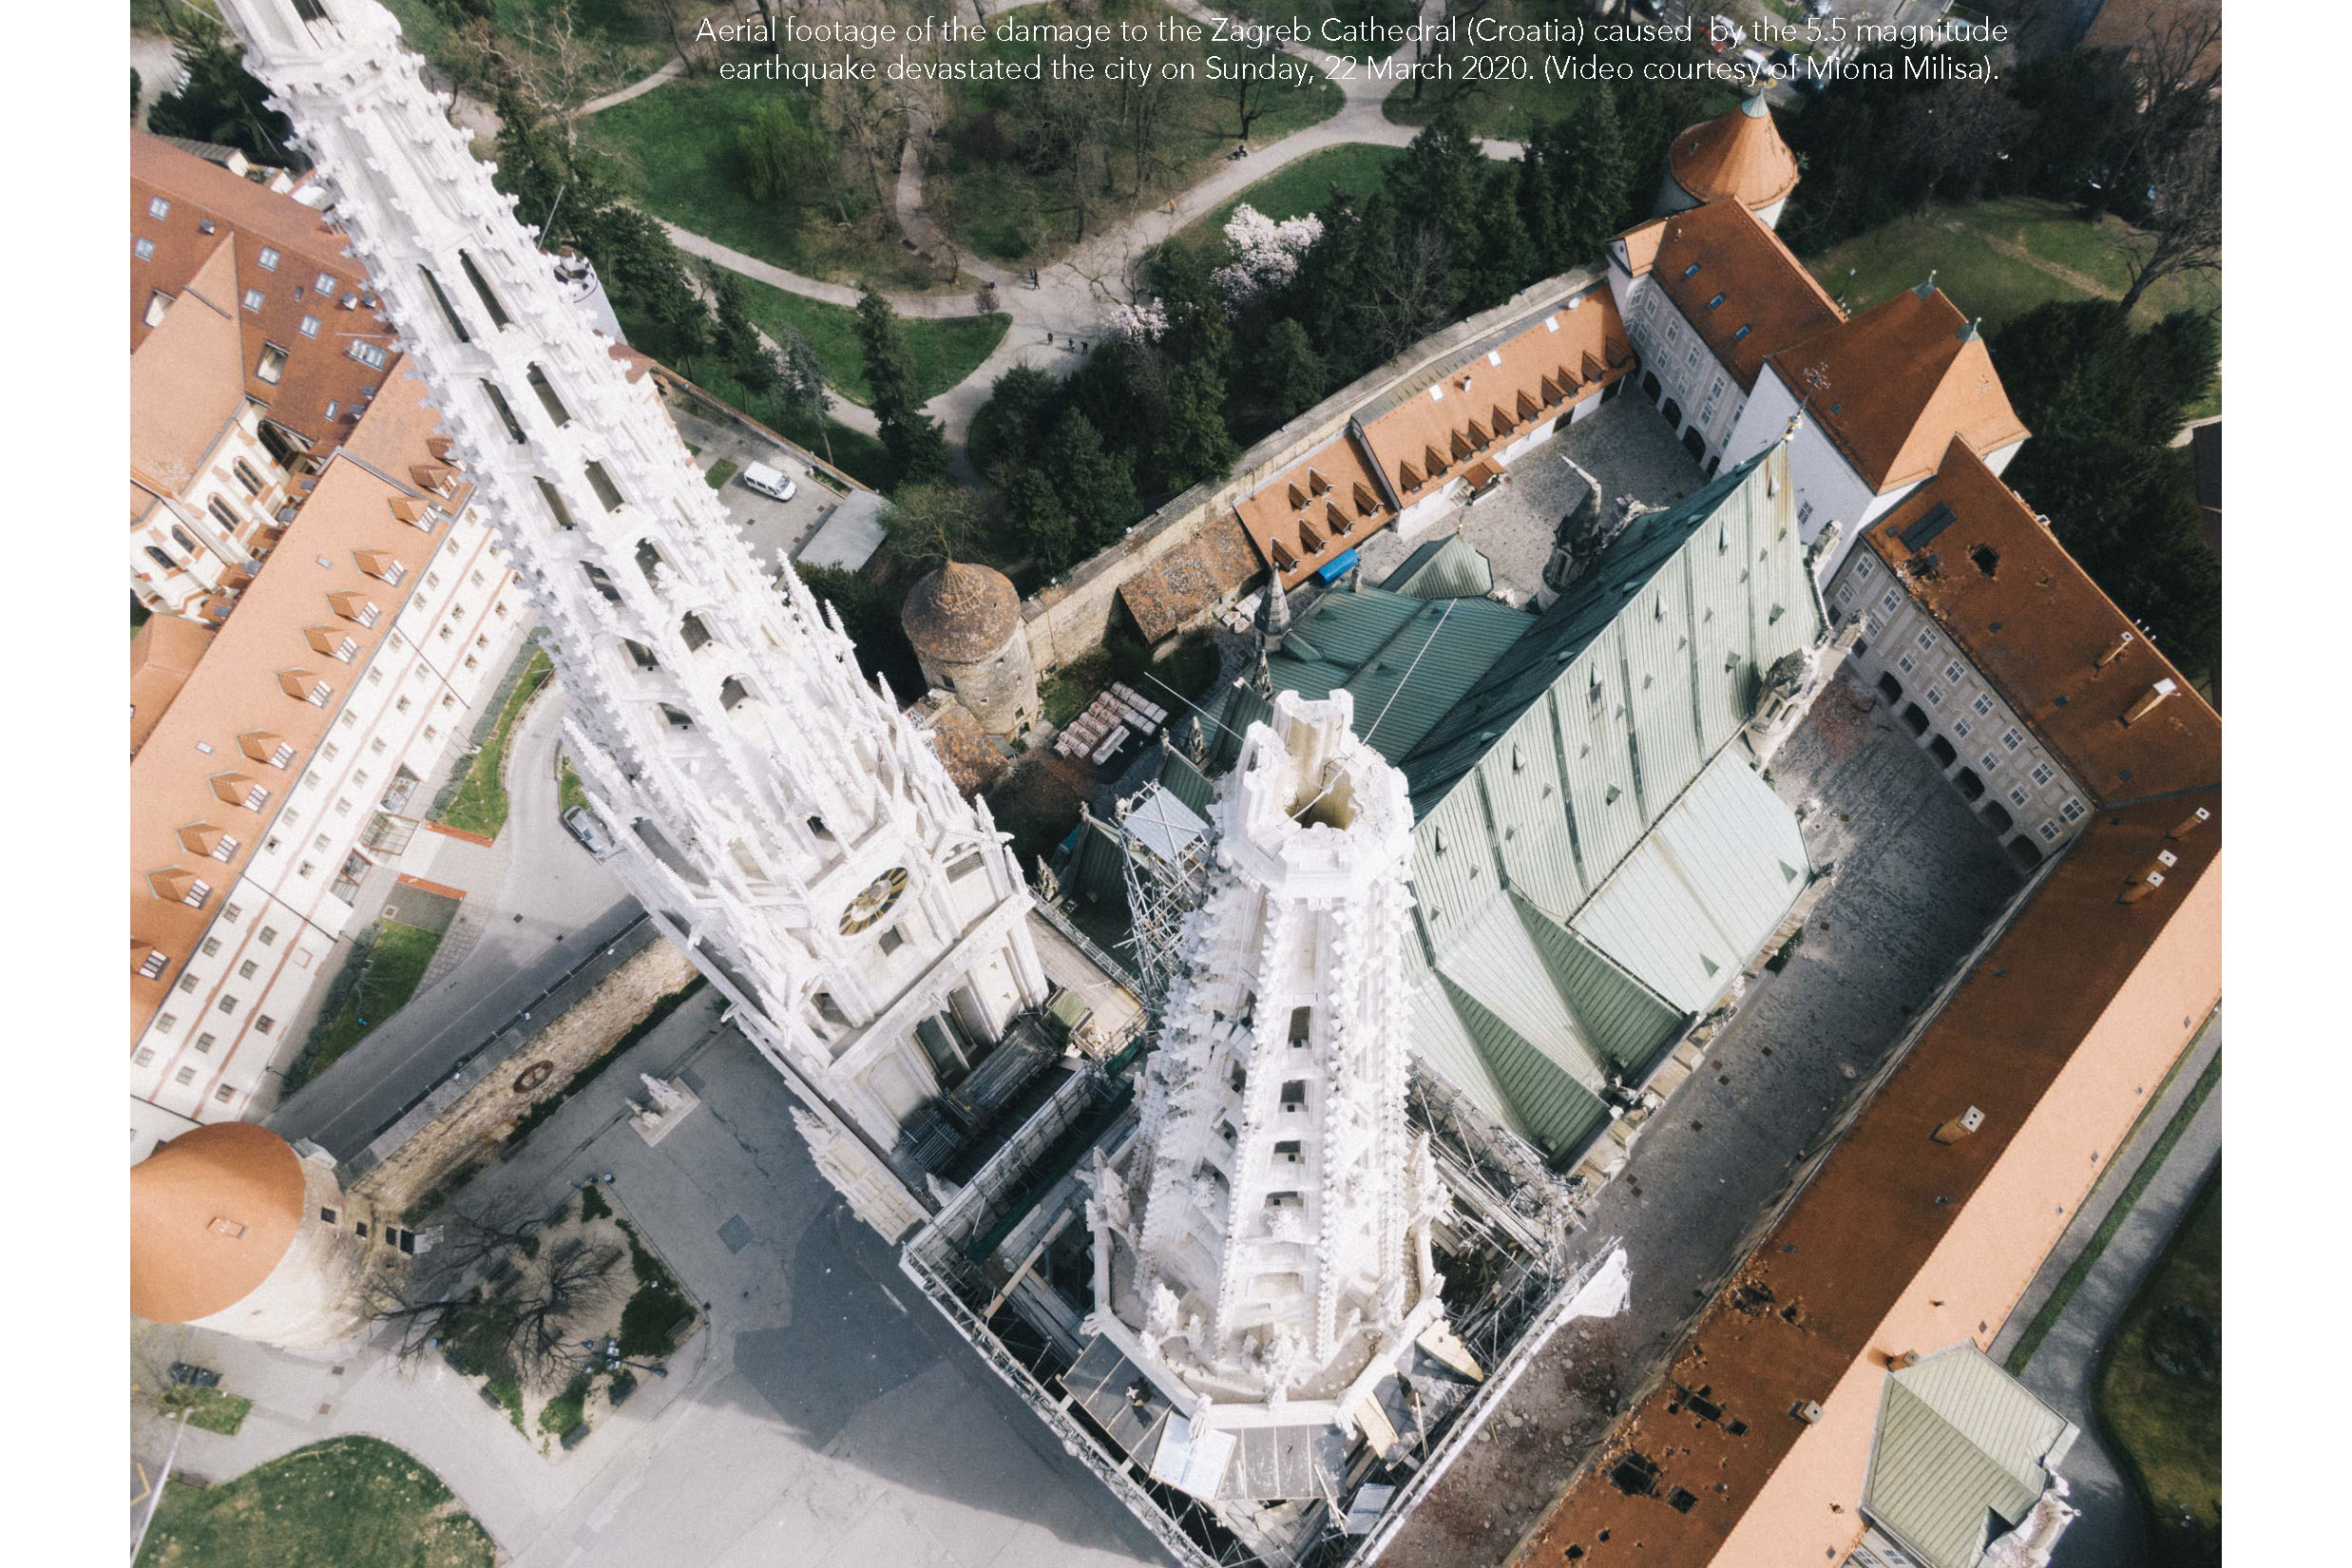 Aerial footage of the damage to the Zagreb Cathedral (Croatia) caused by the 5.5 magnitude earthquake that devastated the city on Sunday, 22 March 2020. Image courtesy of Miona Milisa.